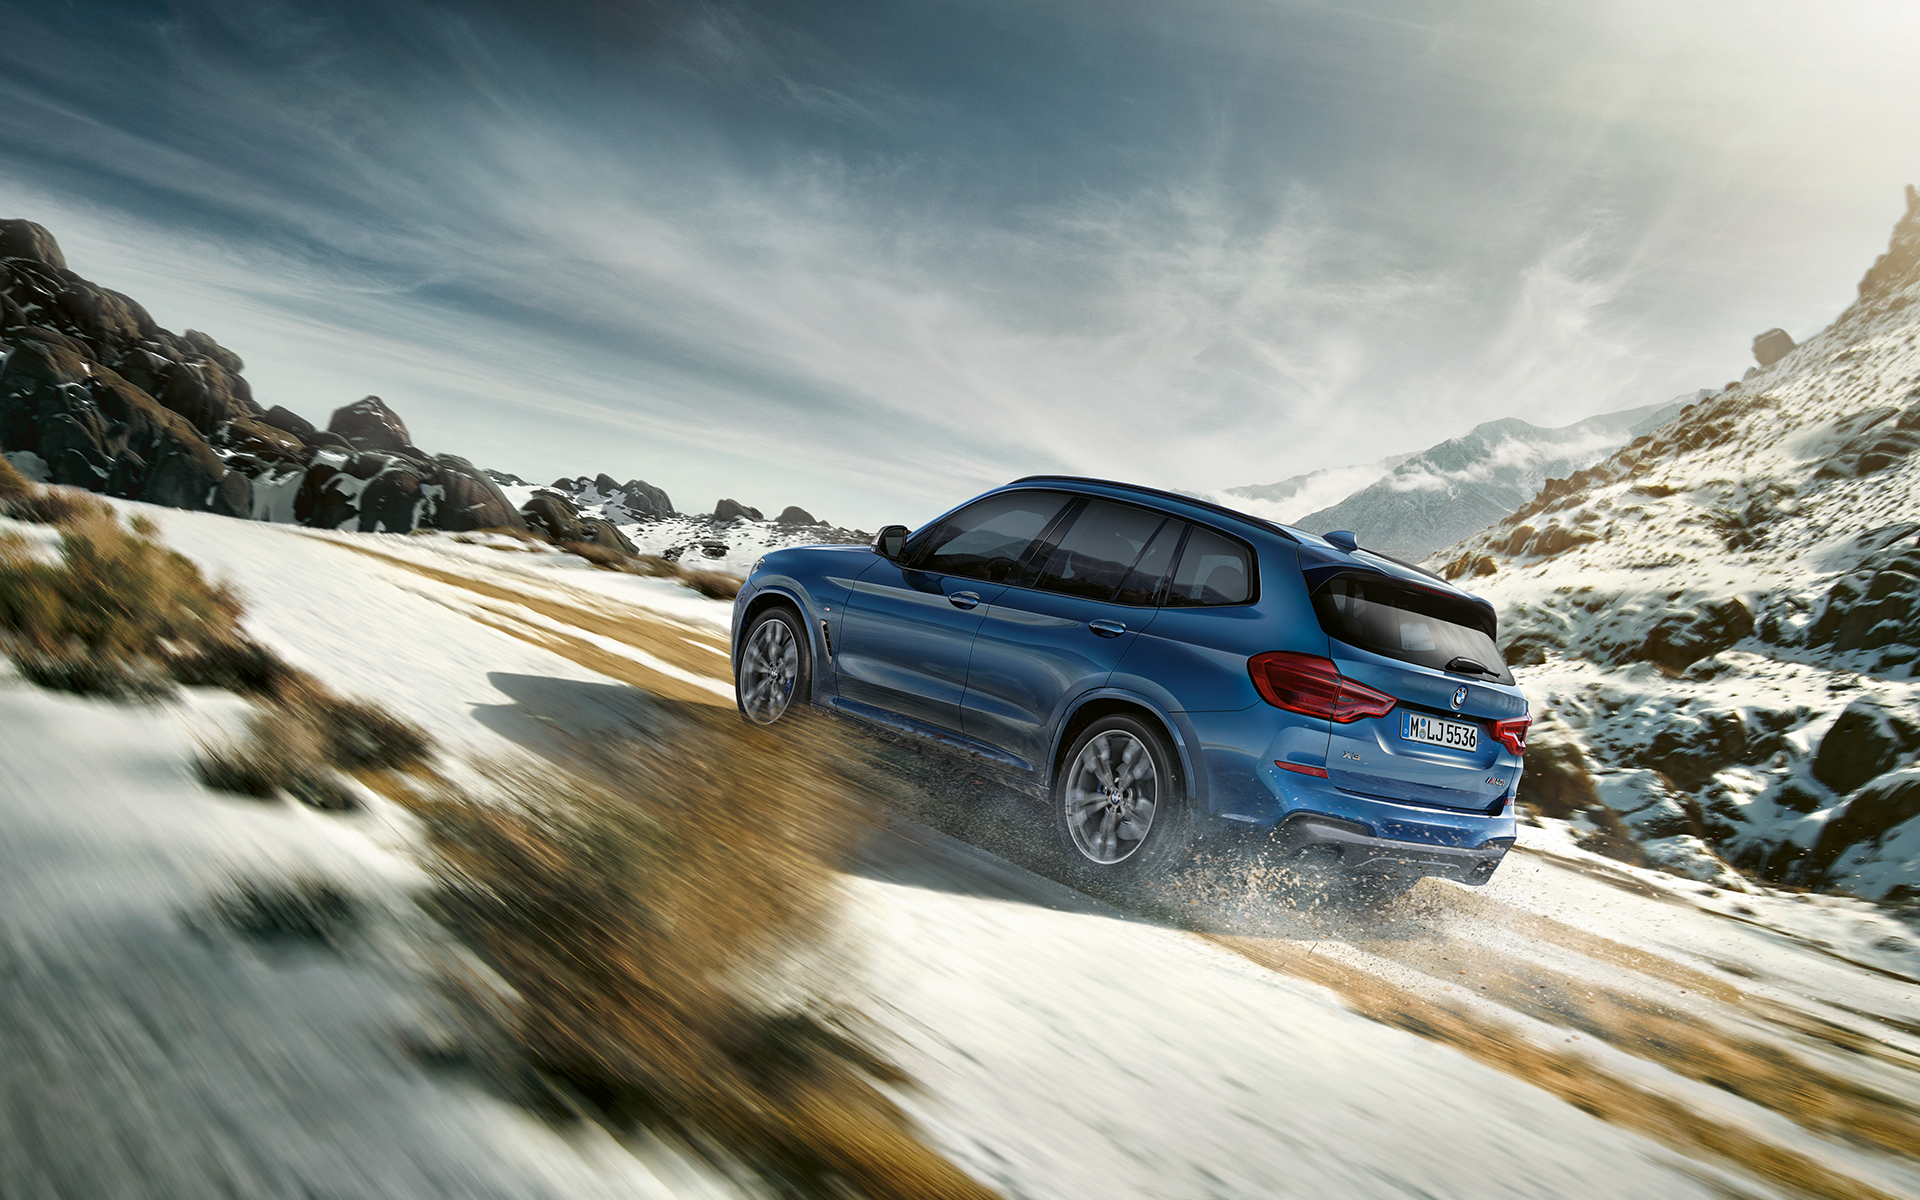 BMW X Series X3 in bright blue: fast drive off-road on the mountains.